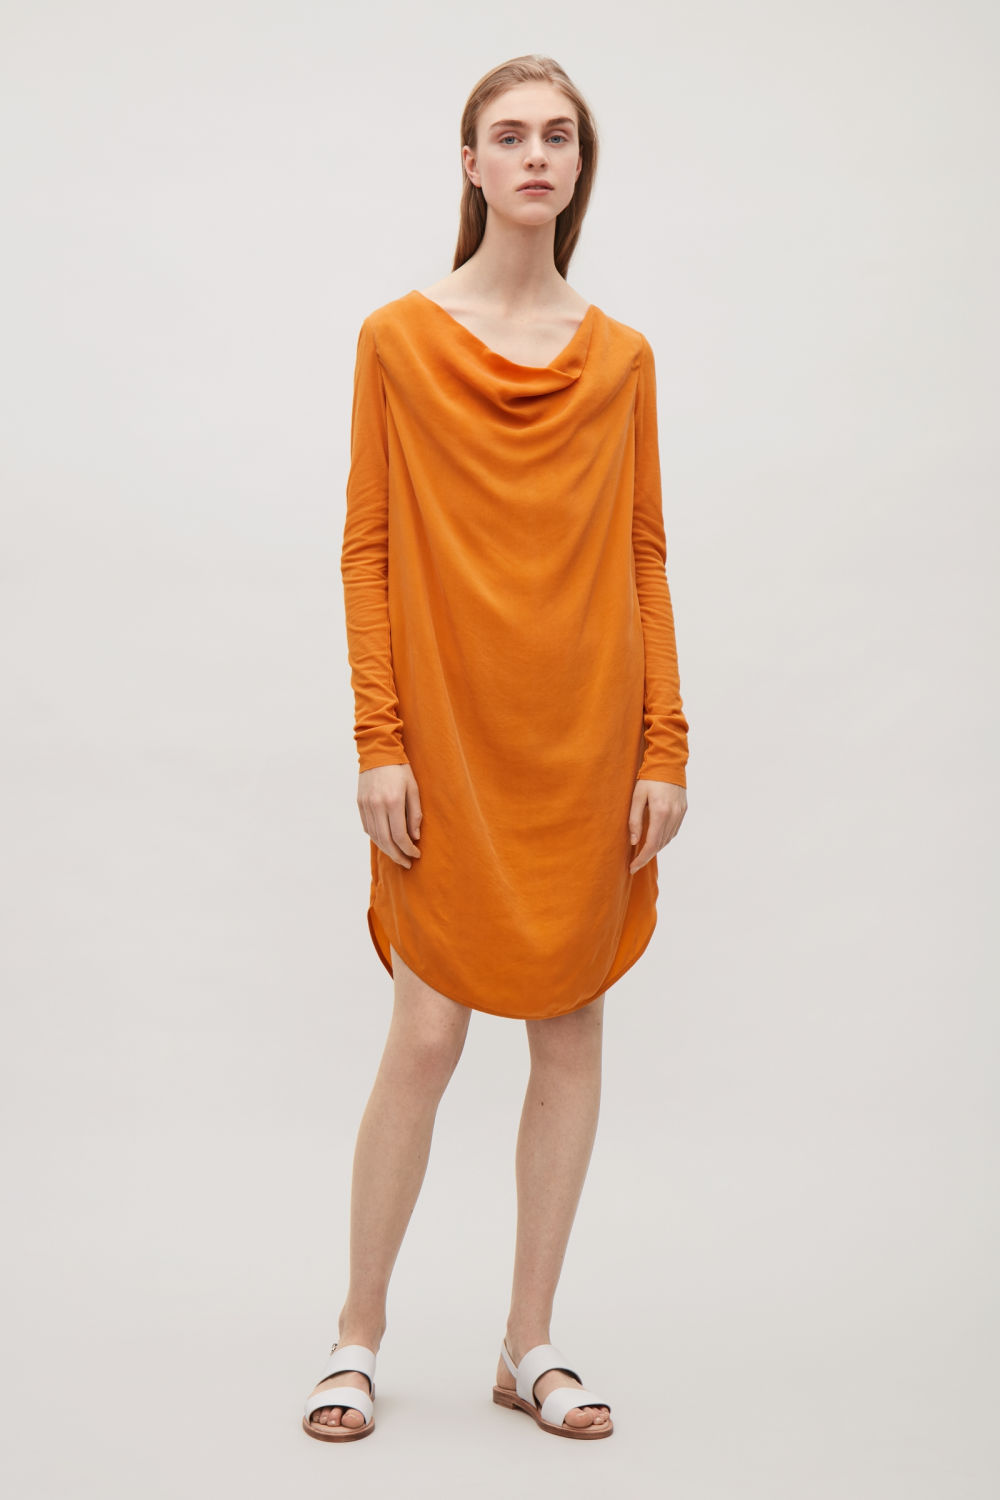 COS DRESS WITH DRAPED NECK,Apricot